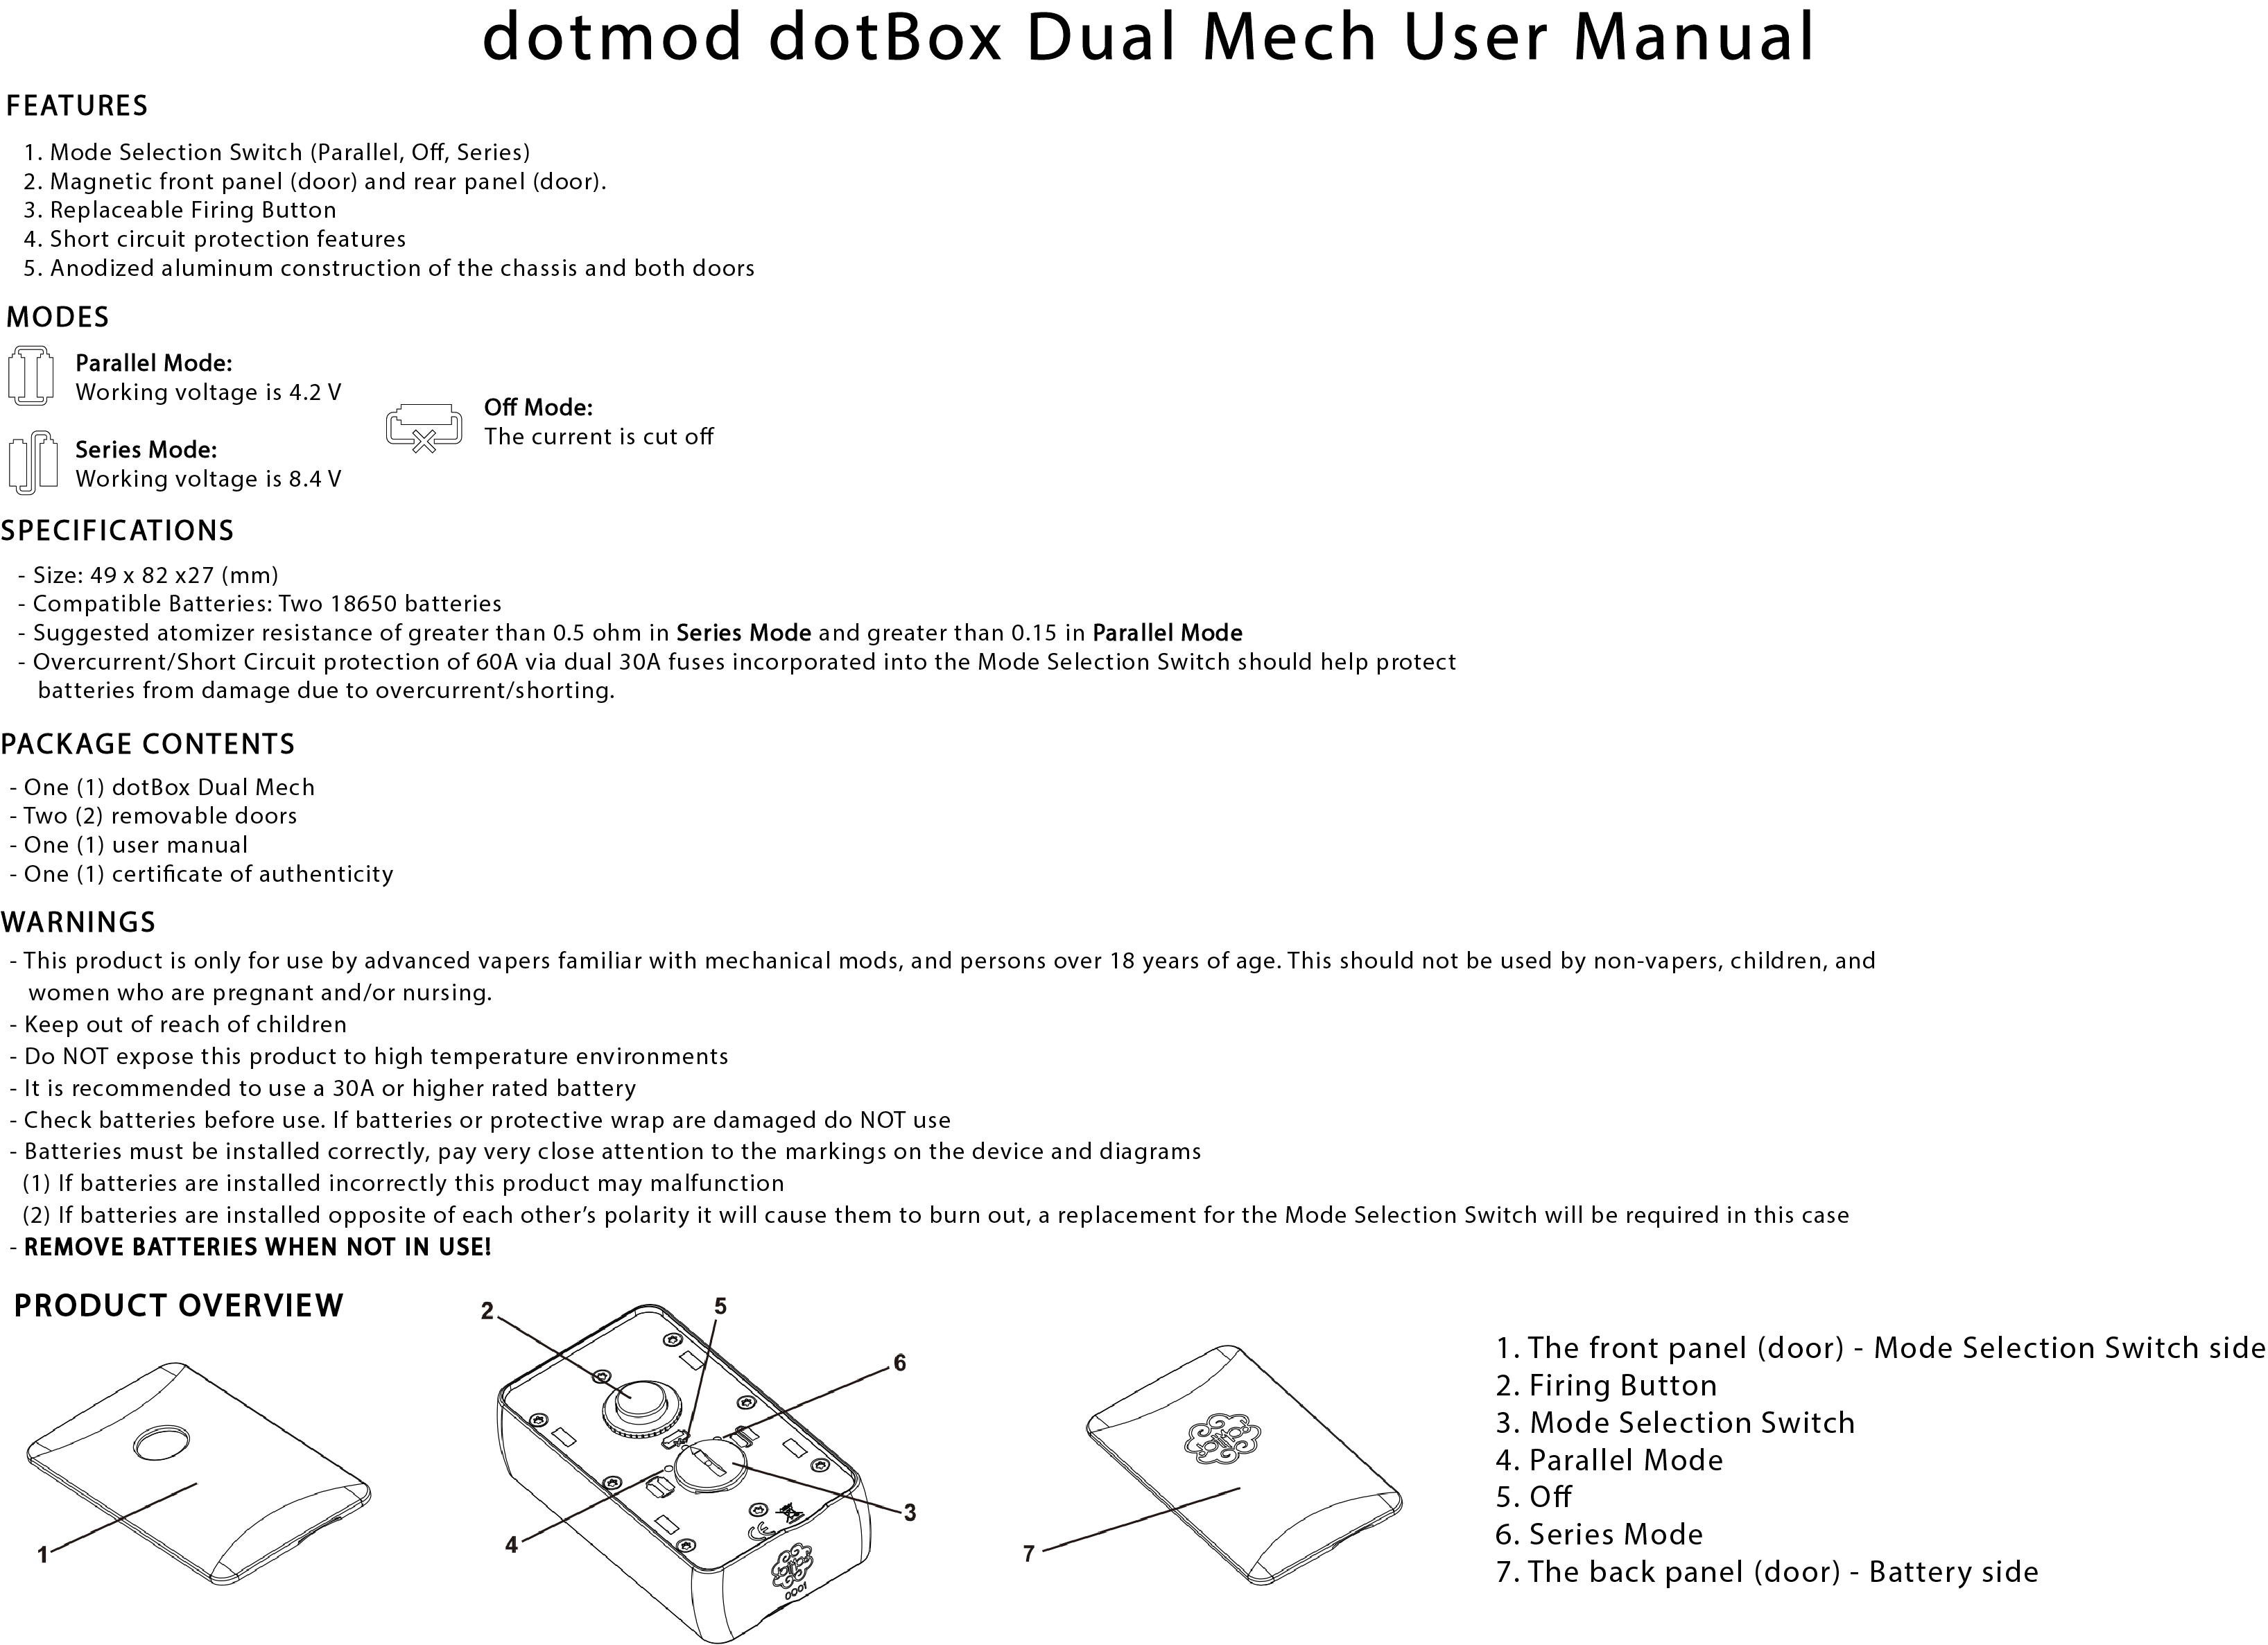 dual_mech_user_manual.png?v=1528410389